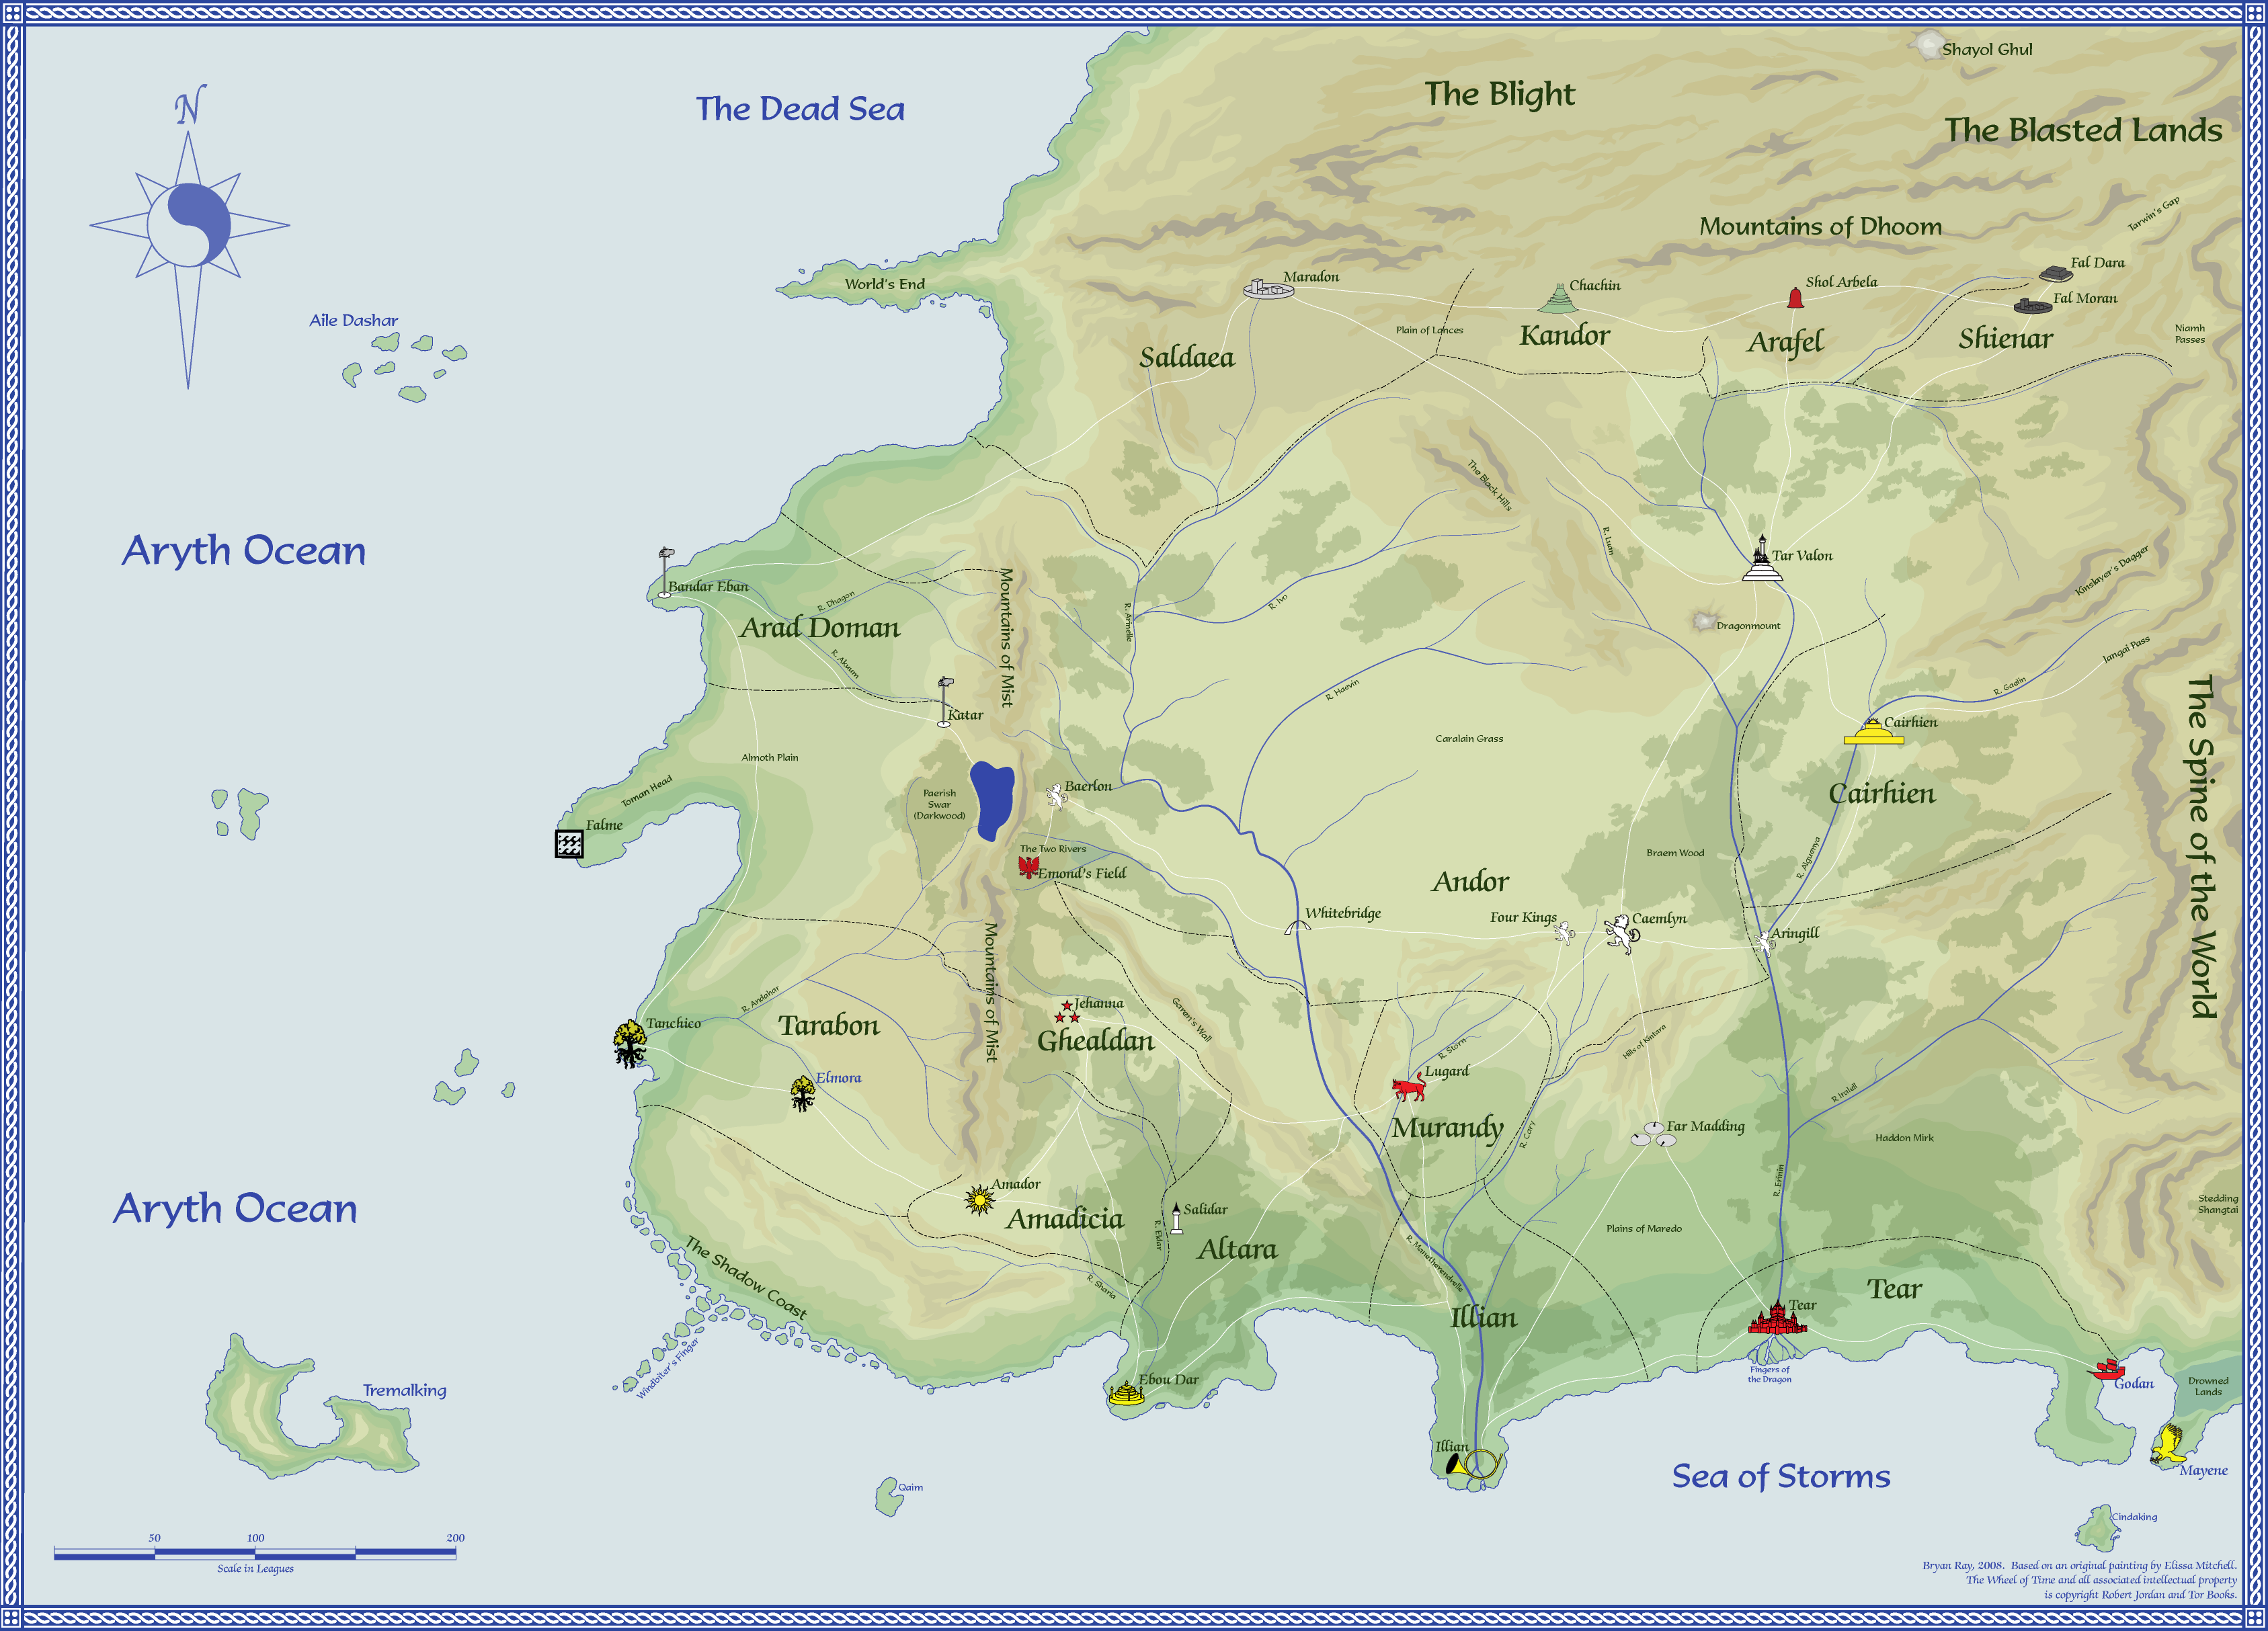 Robert jordans the wheel of time map by randland via robert jordans the wheel of time map by randland via cartographer guild gumiabroncs Choice Image